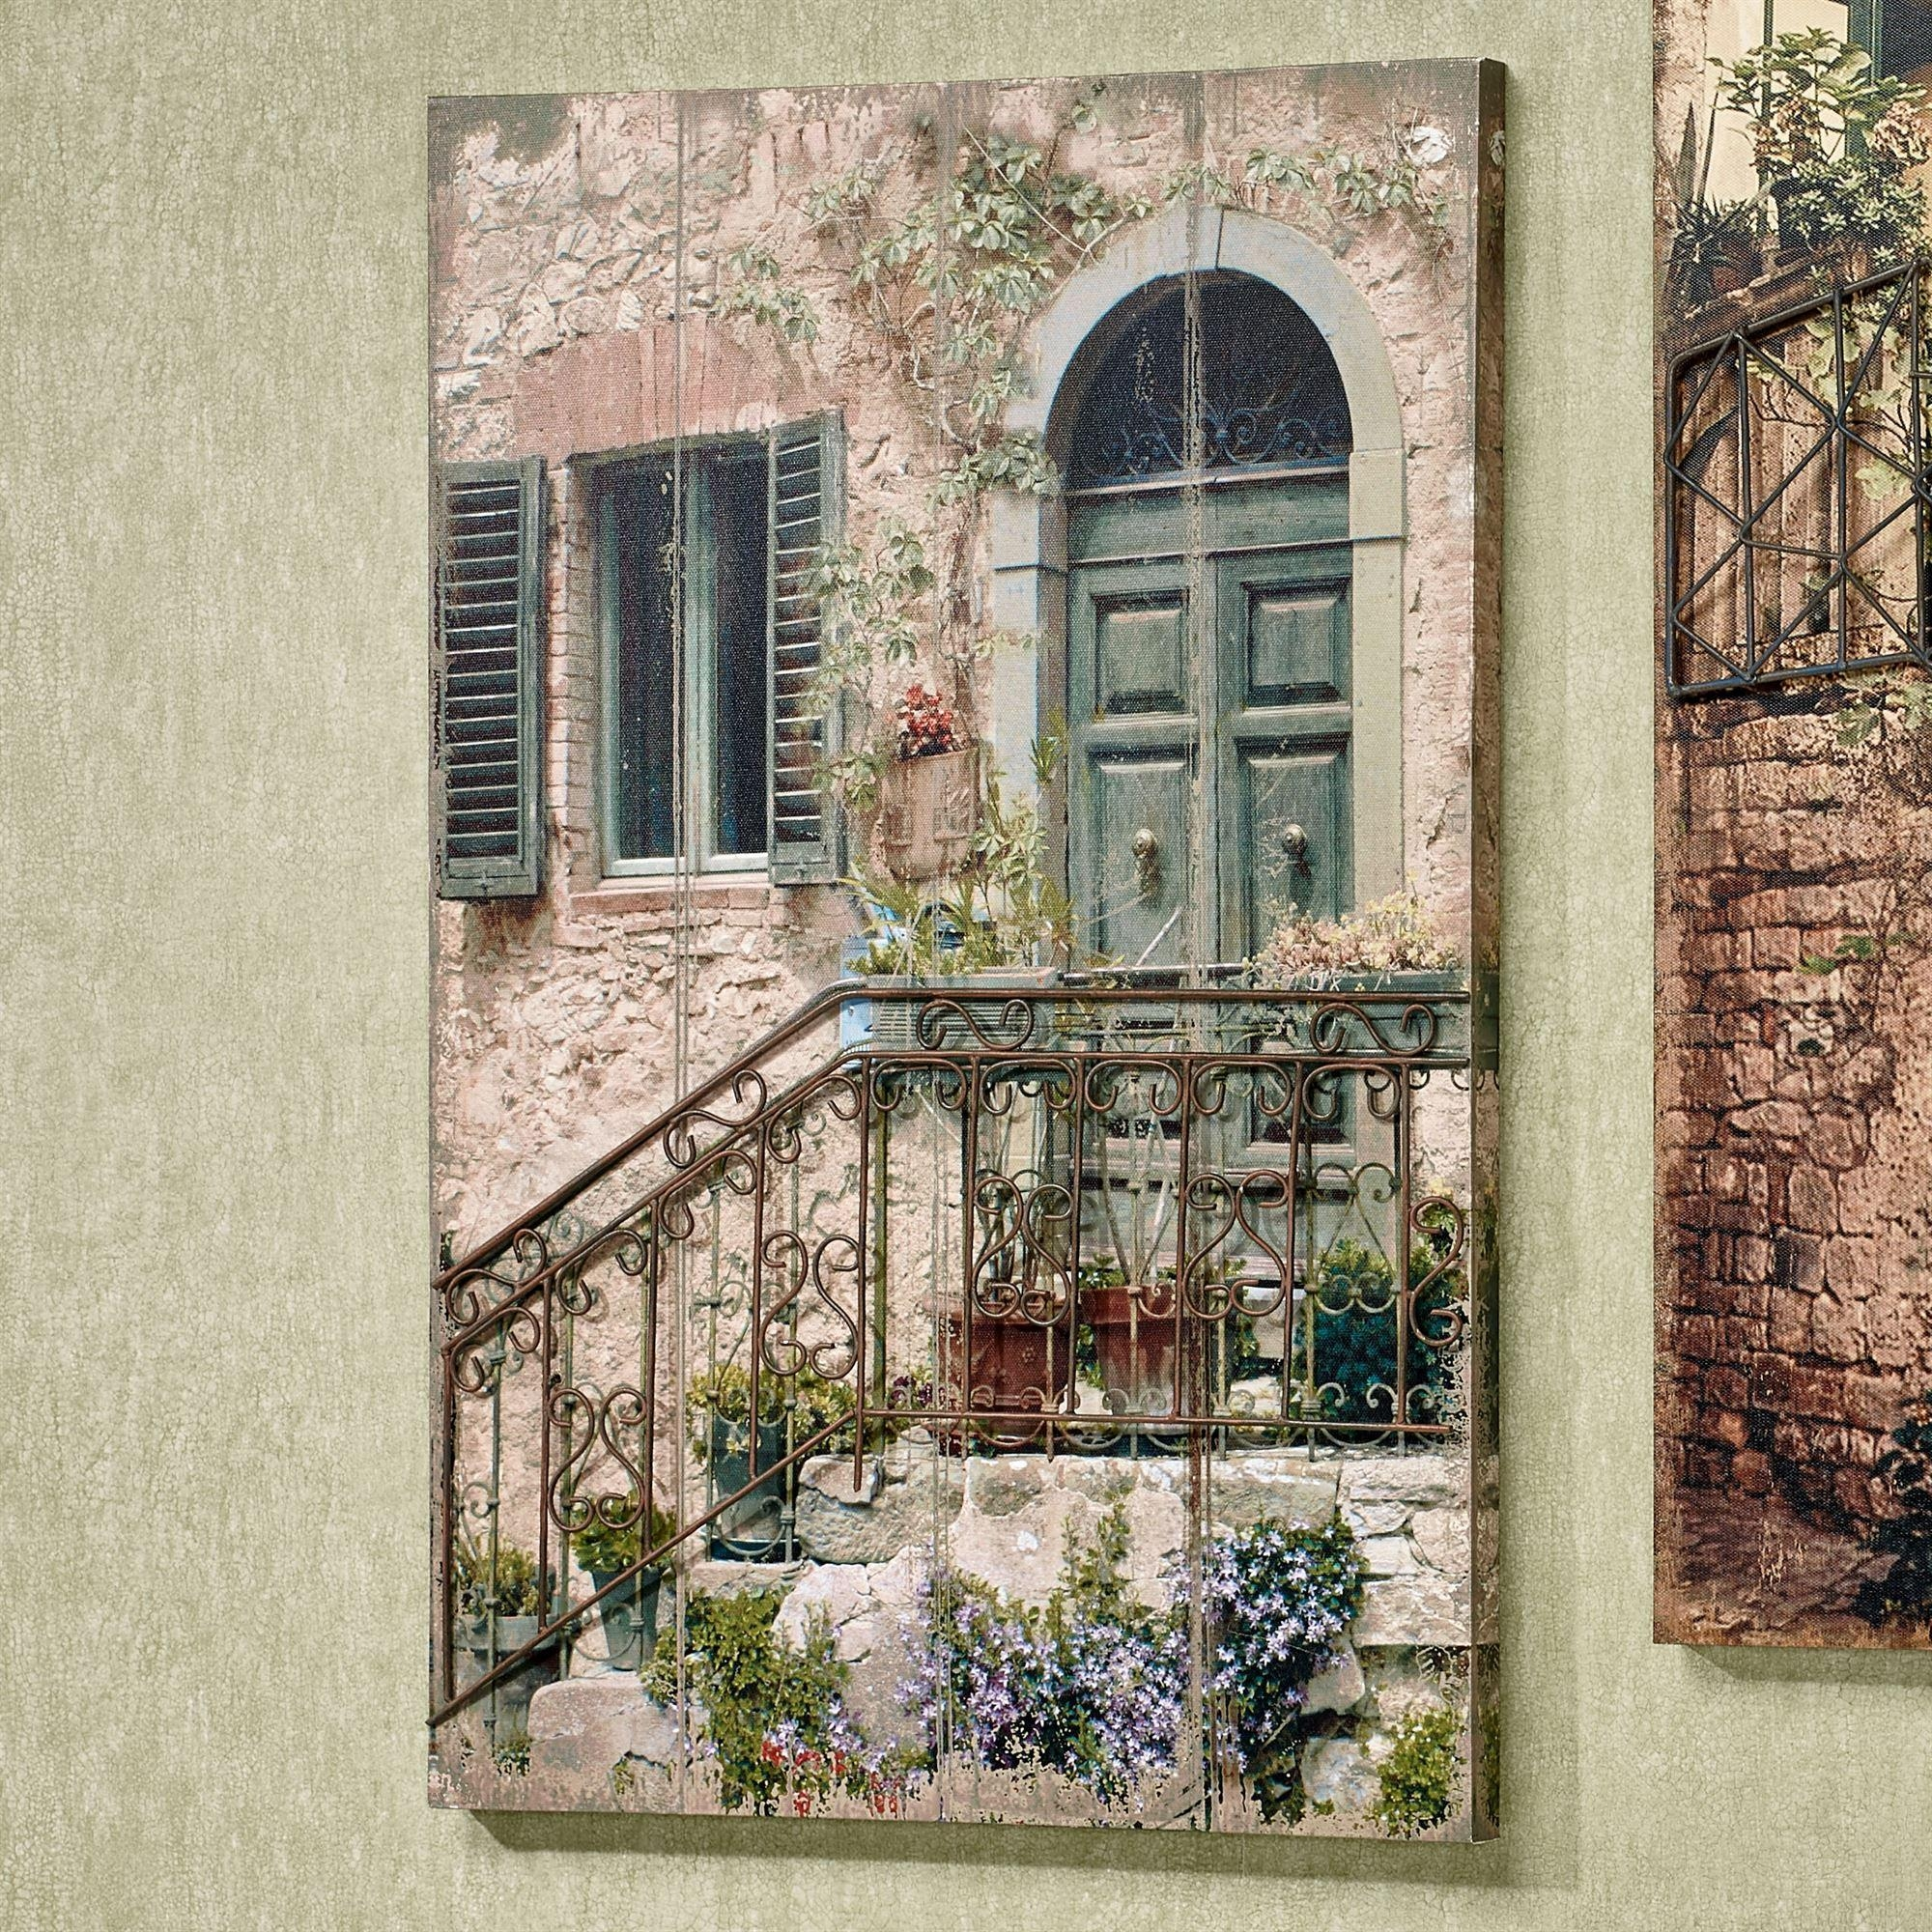 Tuscan Staircase Canvas Wall Art With Metal Details In Tuscany Wall Art (Image 13 of 20)